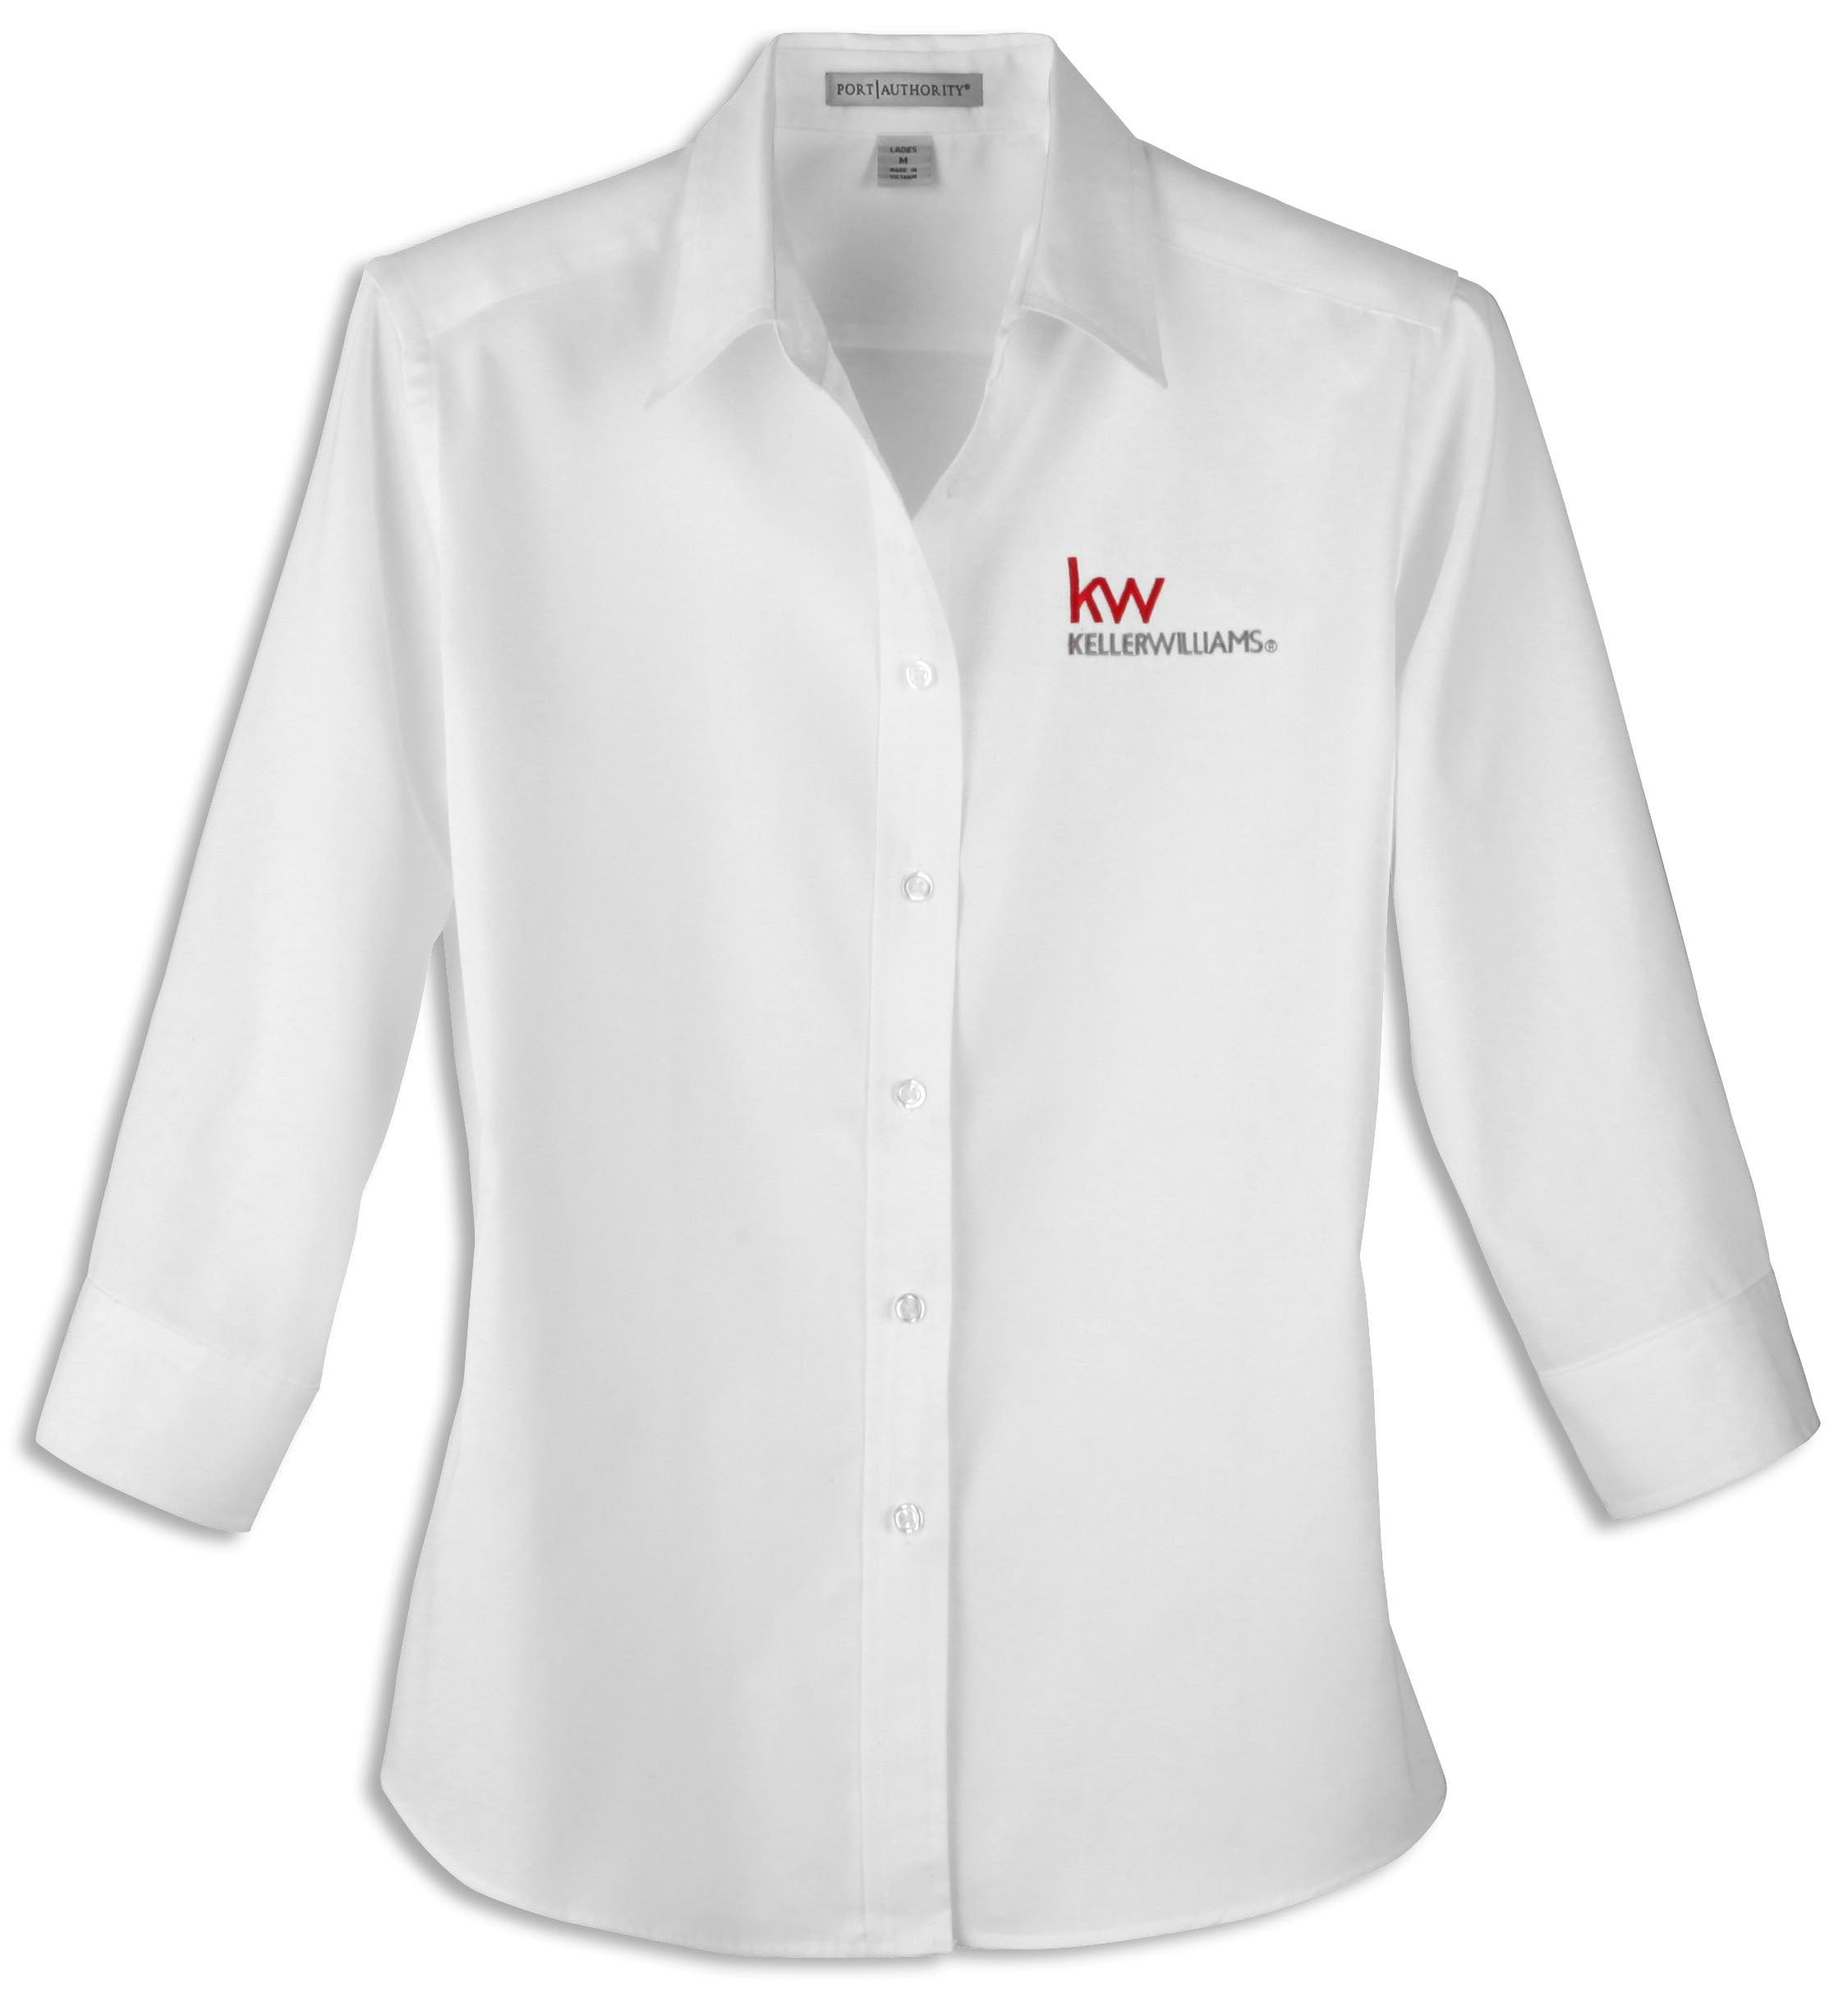 white 3/4-sleeve button up shirt with red and grey Keller Williams logo